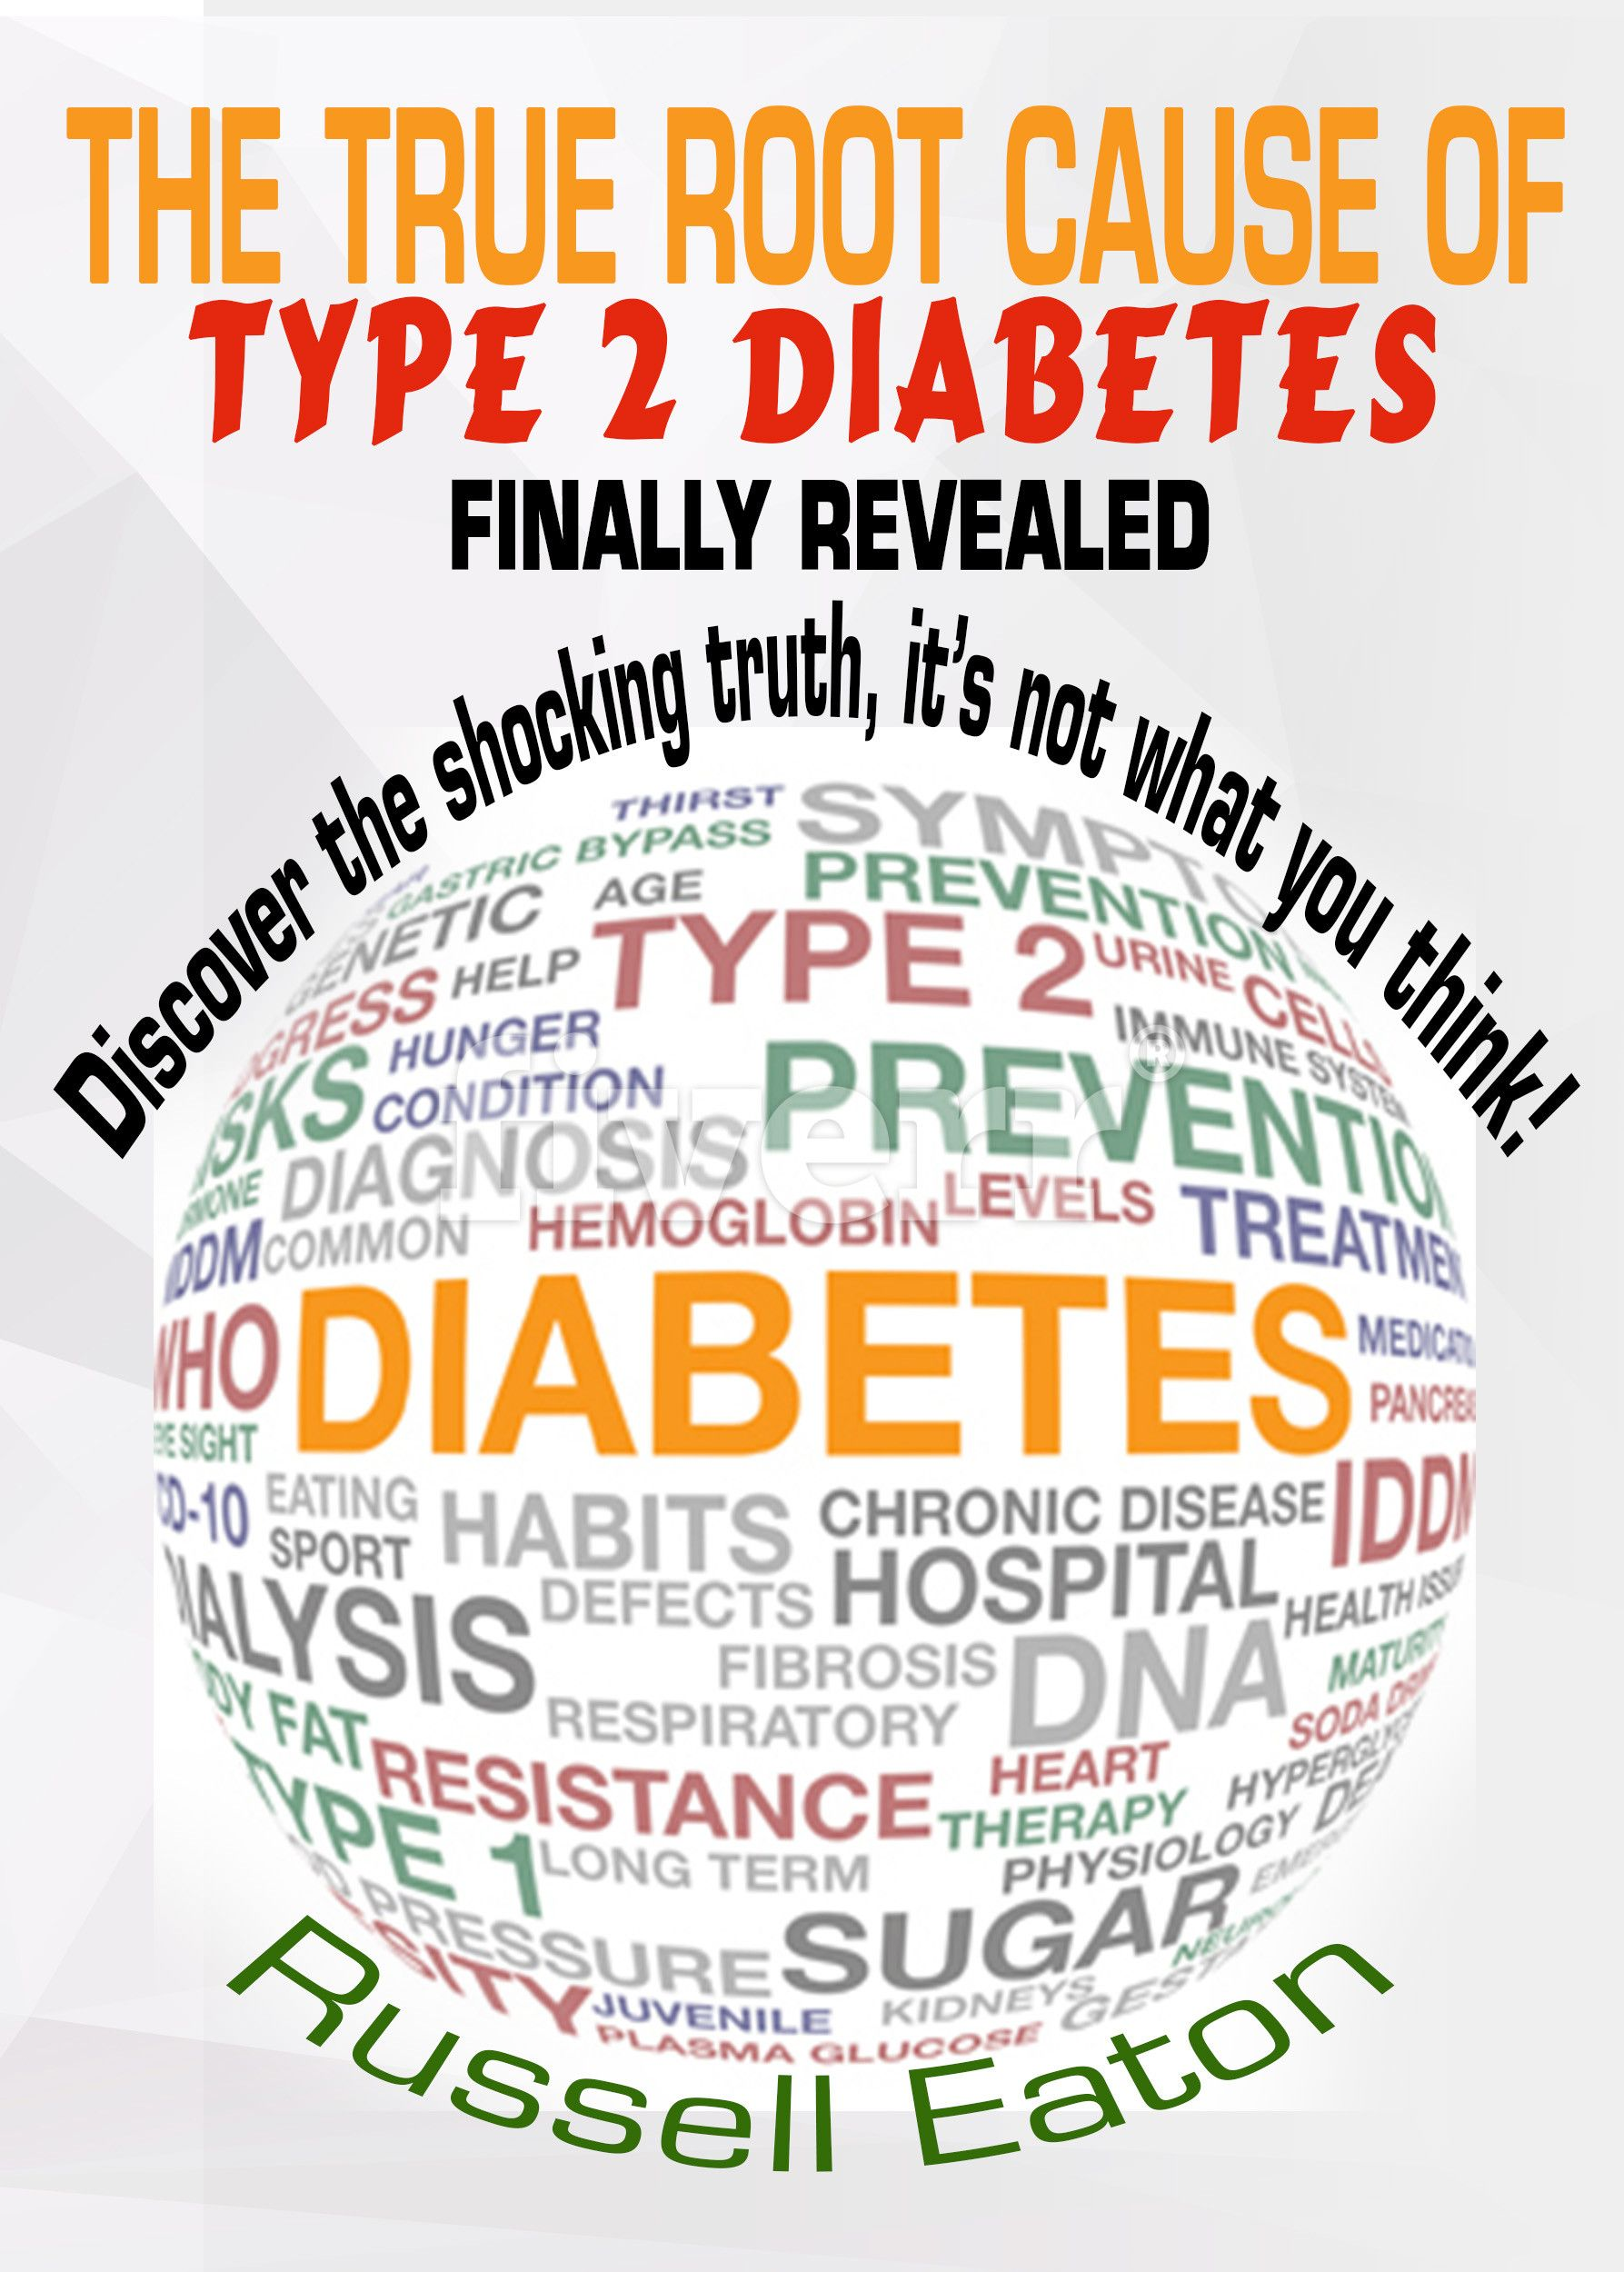 the root cause of diabetes mellitus and its treatment